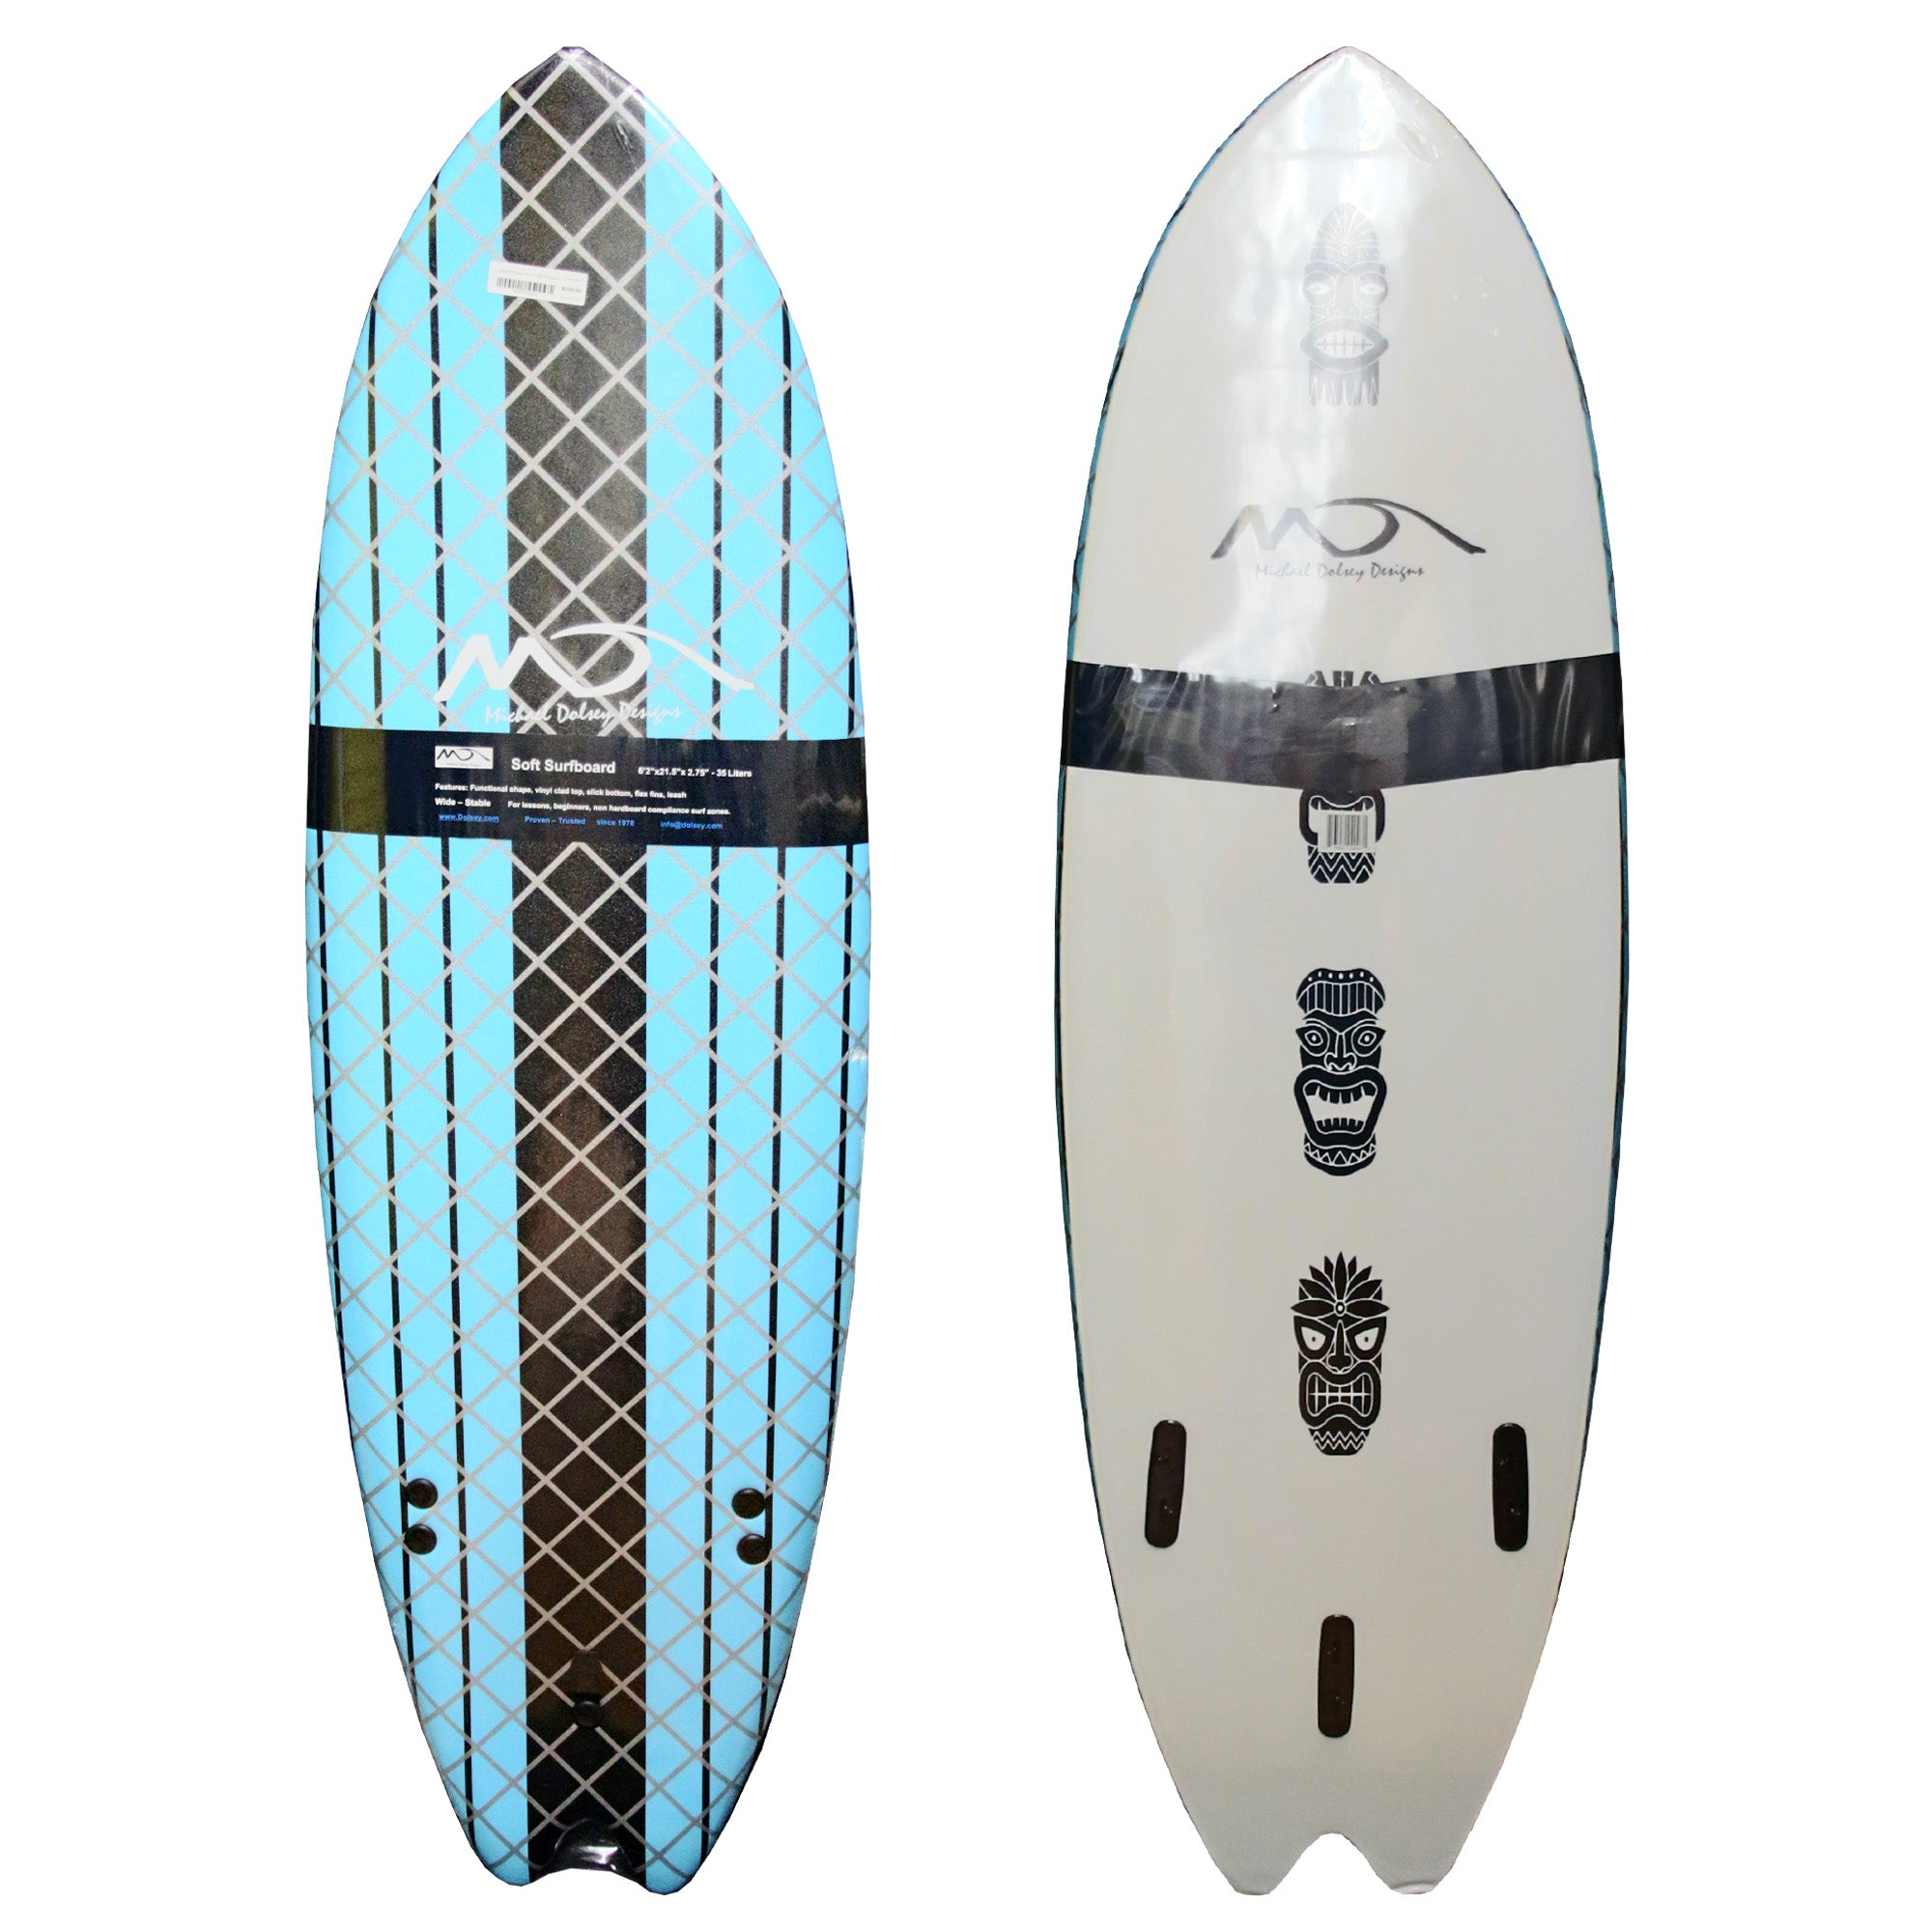 Michael Dolsey Fish 6'2 Soft Surfboard